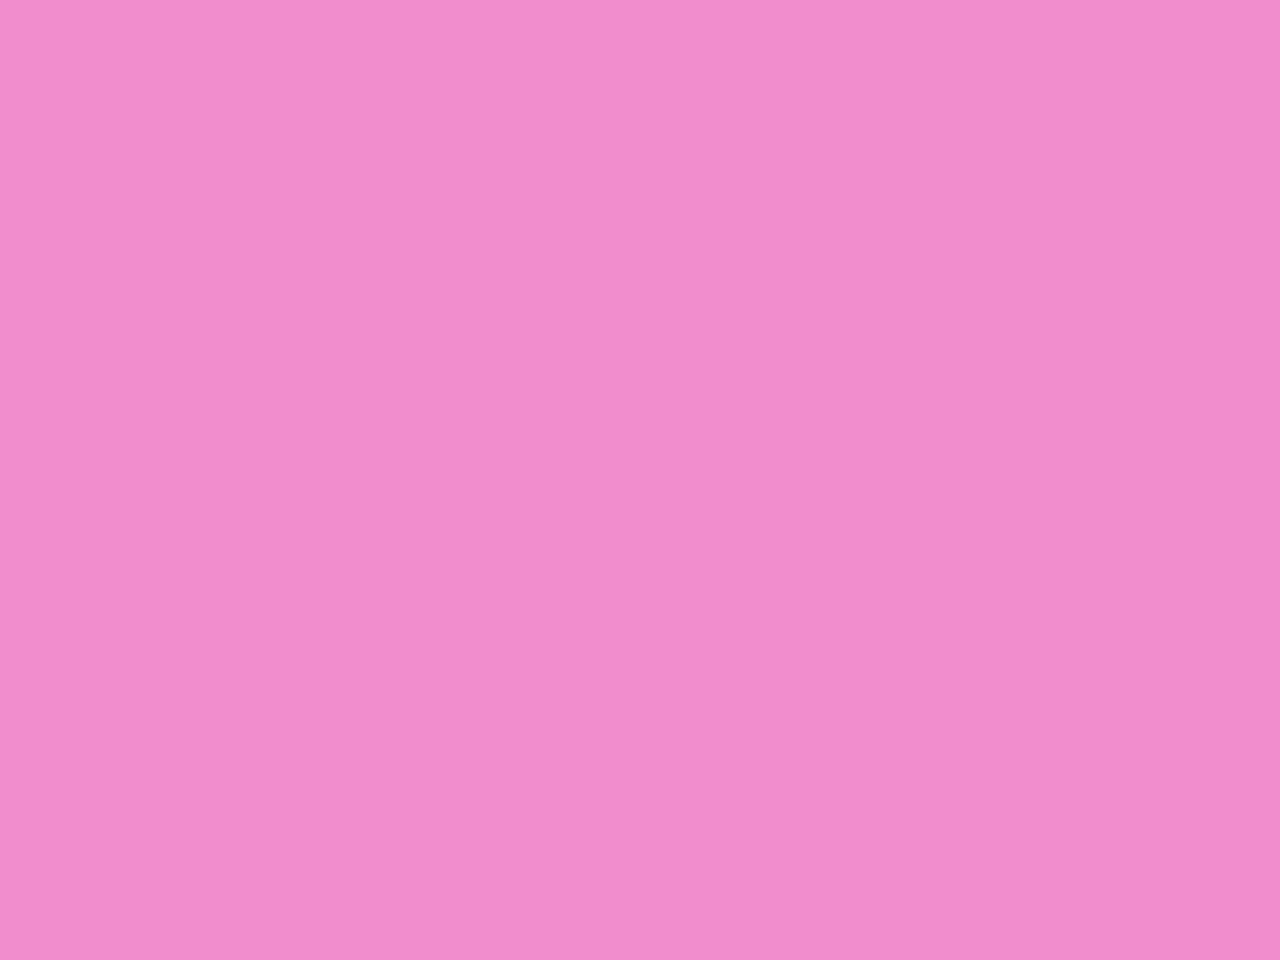 1280x960 Orchid Pink Solid Color Background